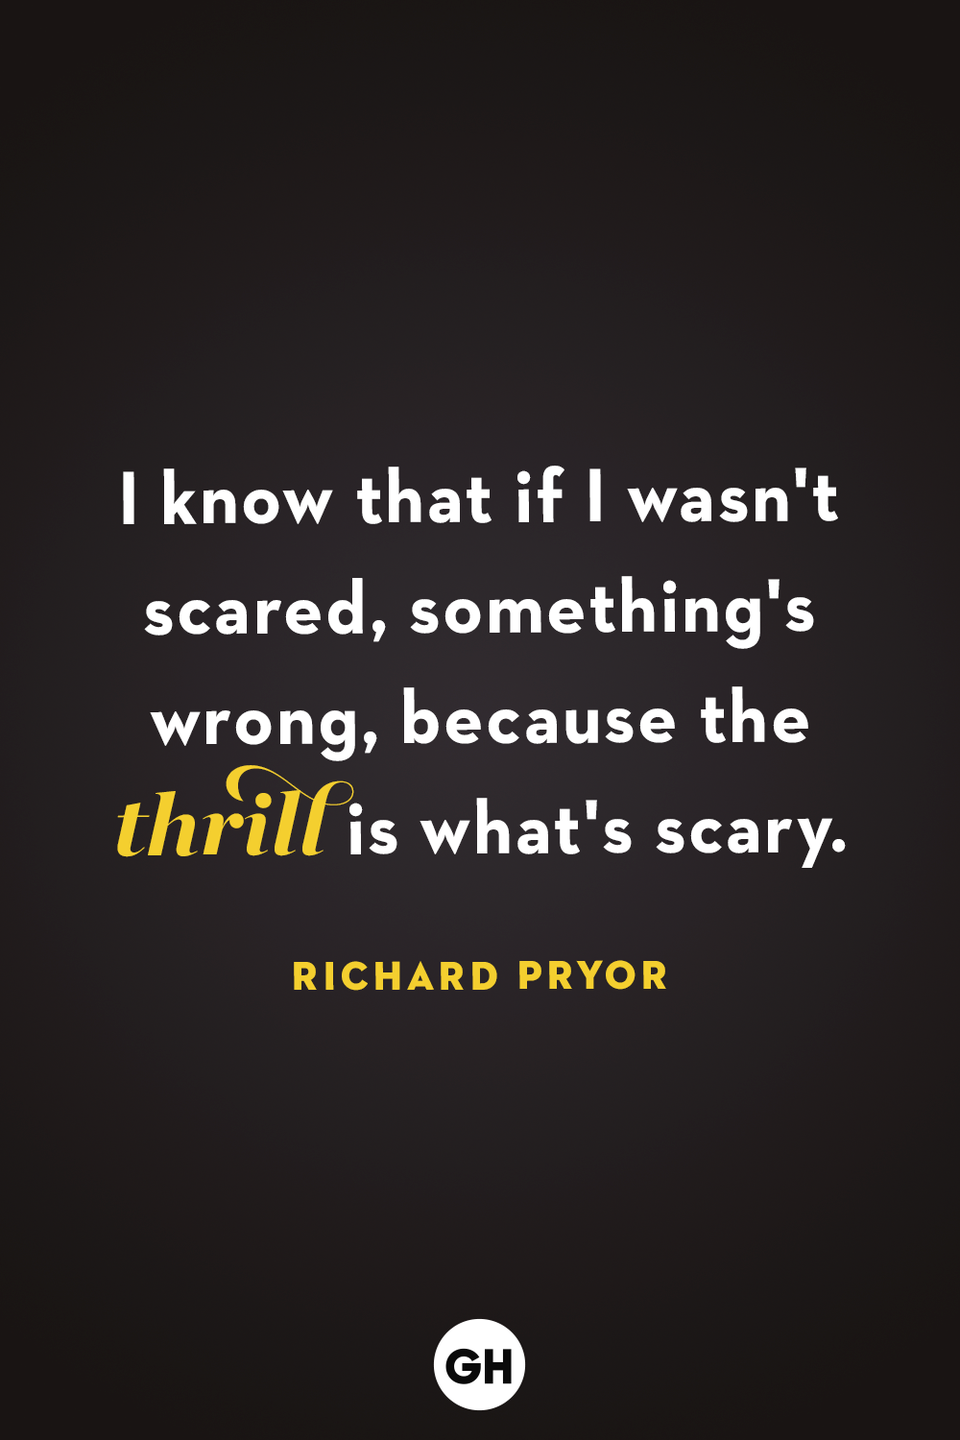 <p>I know that if I wasn't scared, something's wrong, because the thrill is what's scary.</p>